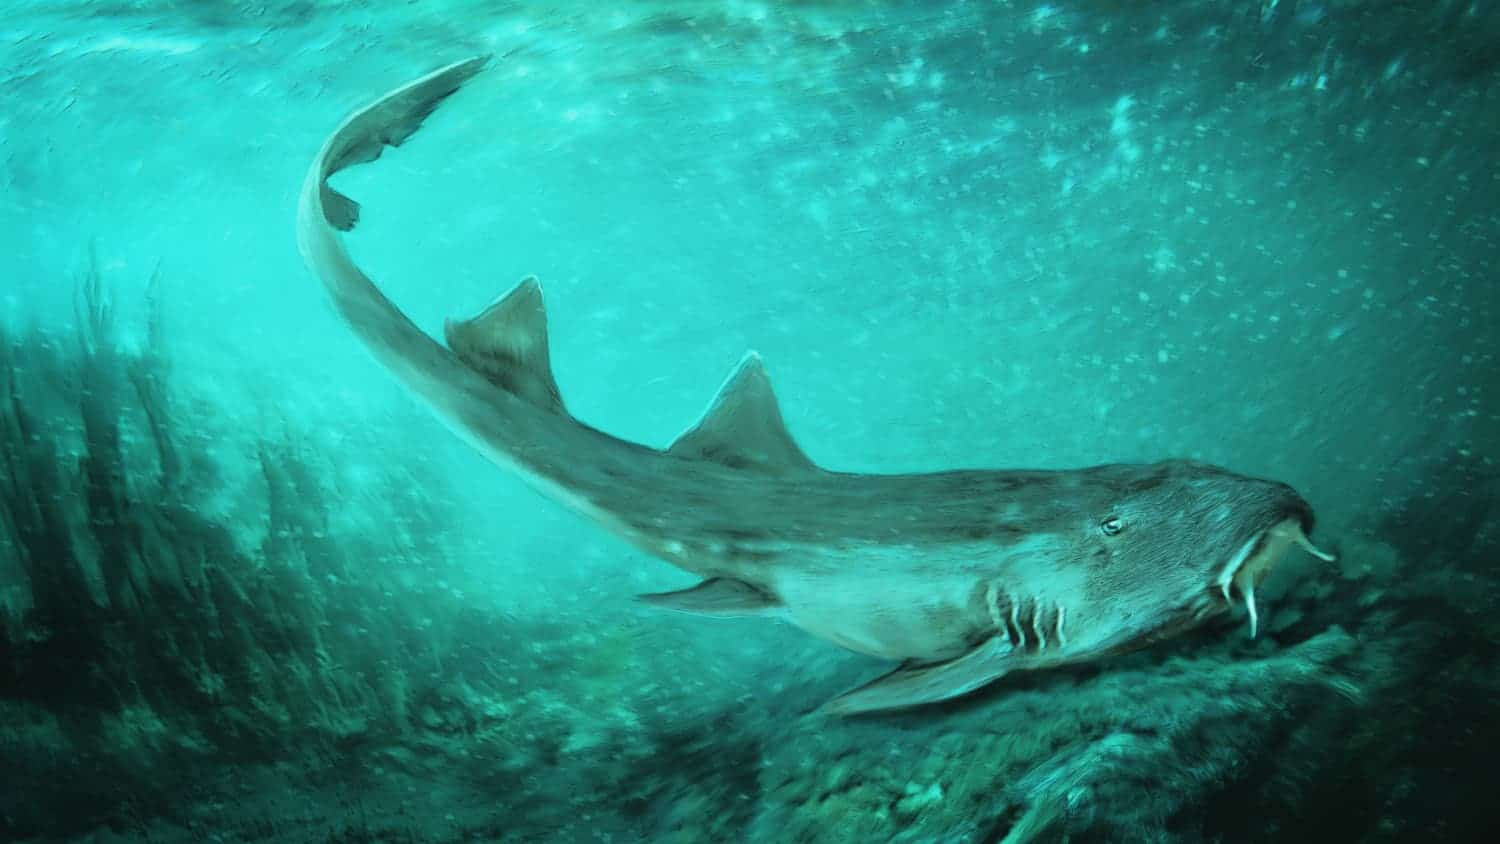 Illustration of a Galagadon shark swimming in ocean water